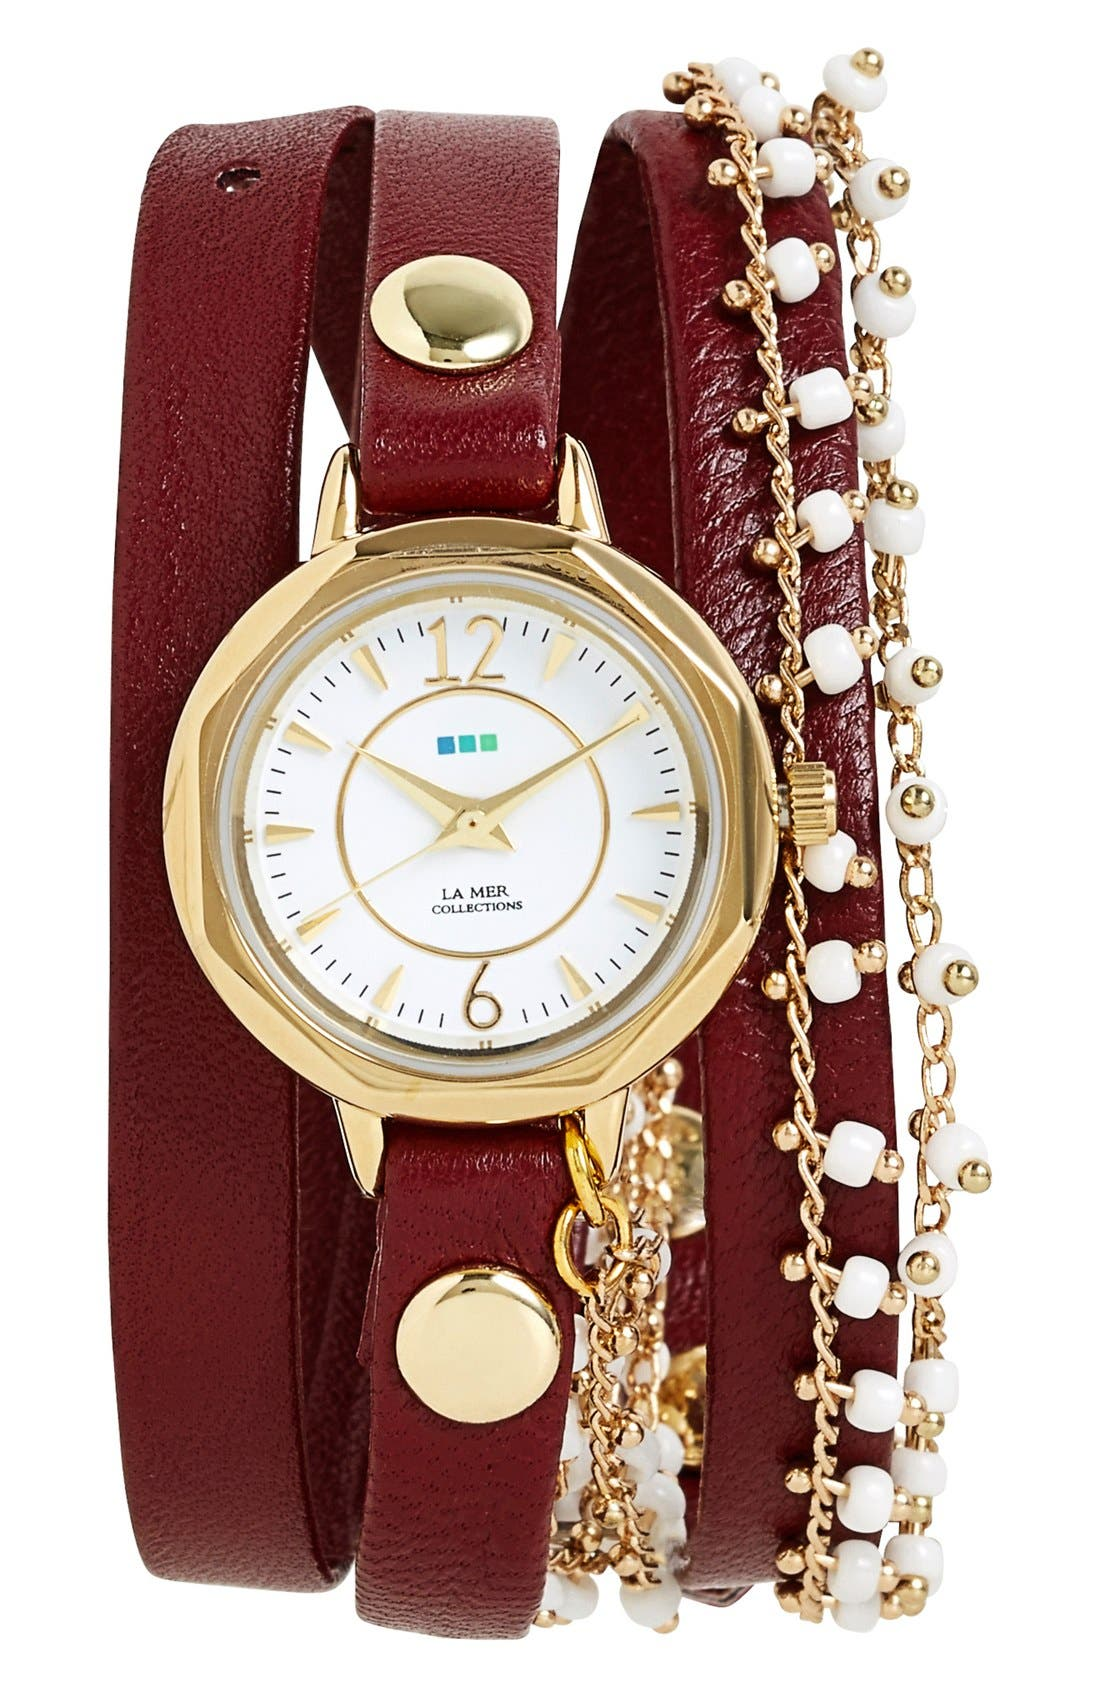 Alternate Image 1 Selected - La Mer Collections Beaded Chain & Leather Wrap Watch, 19mm